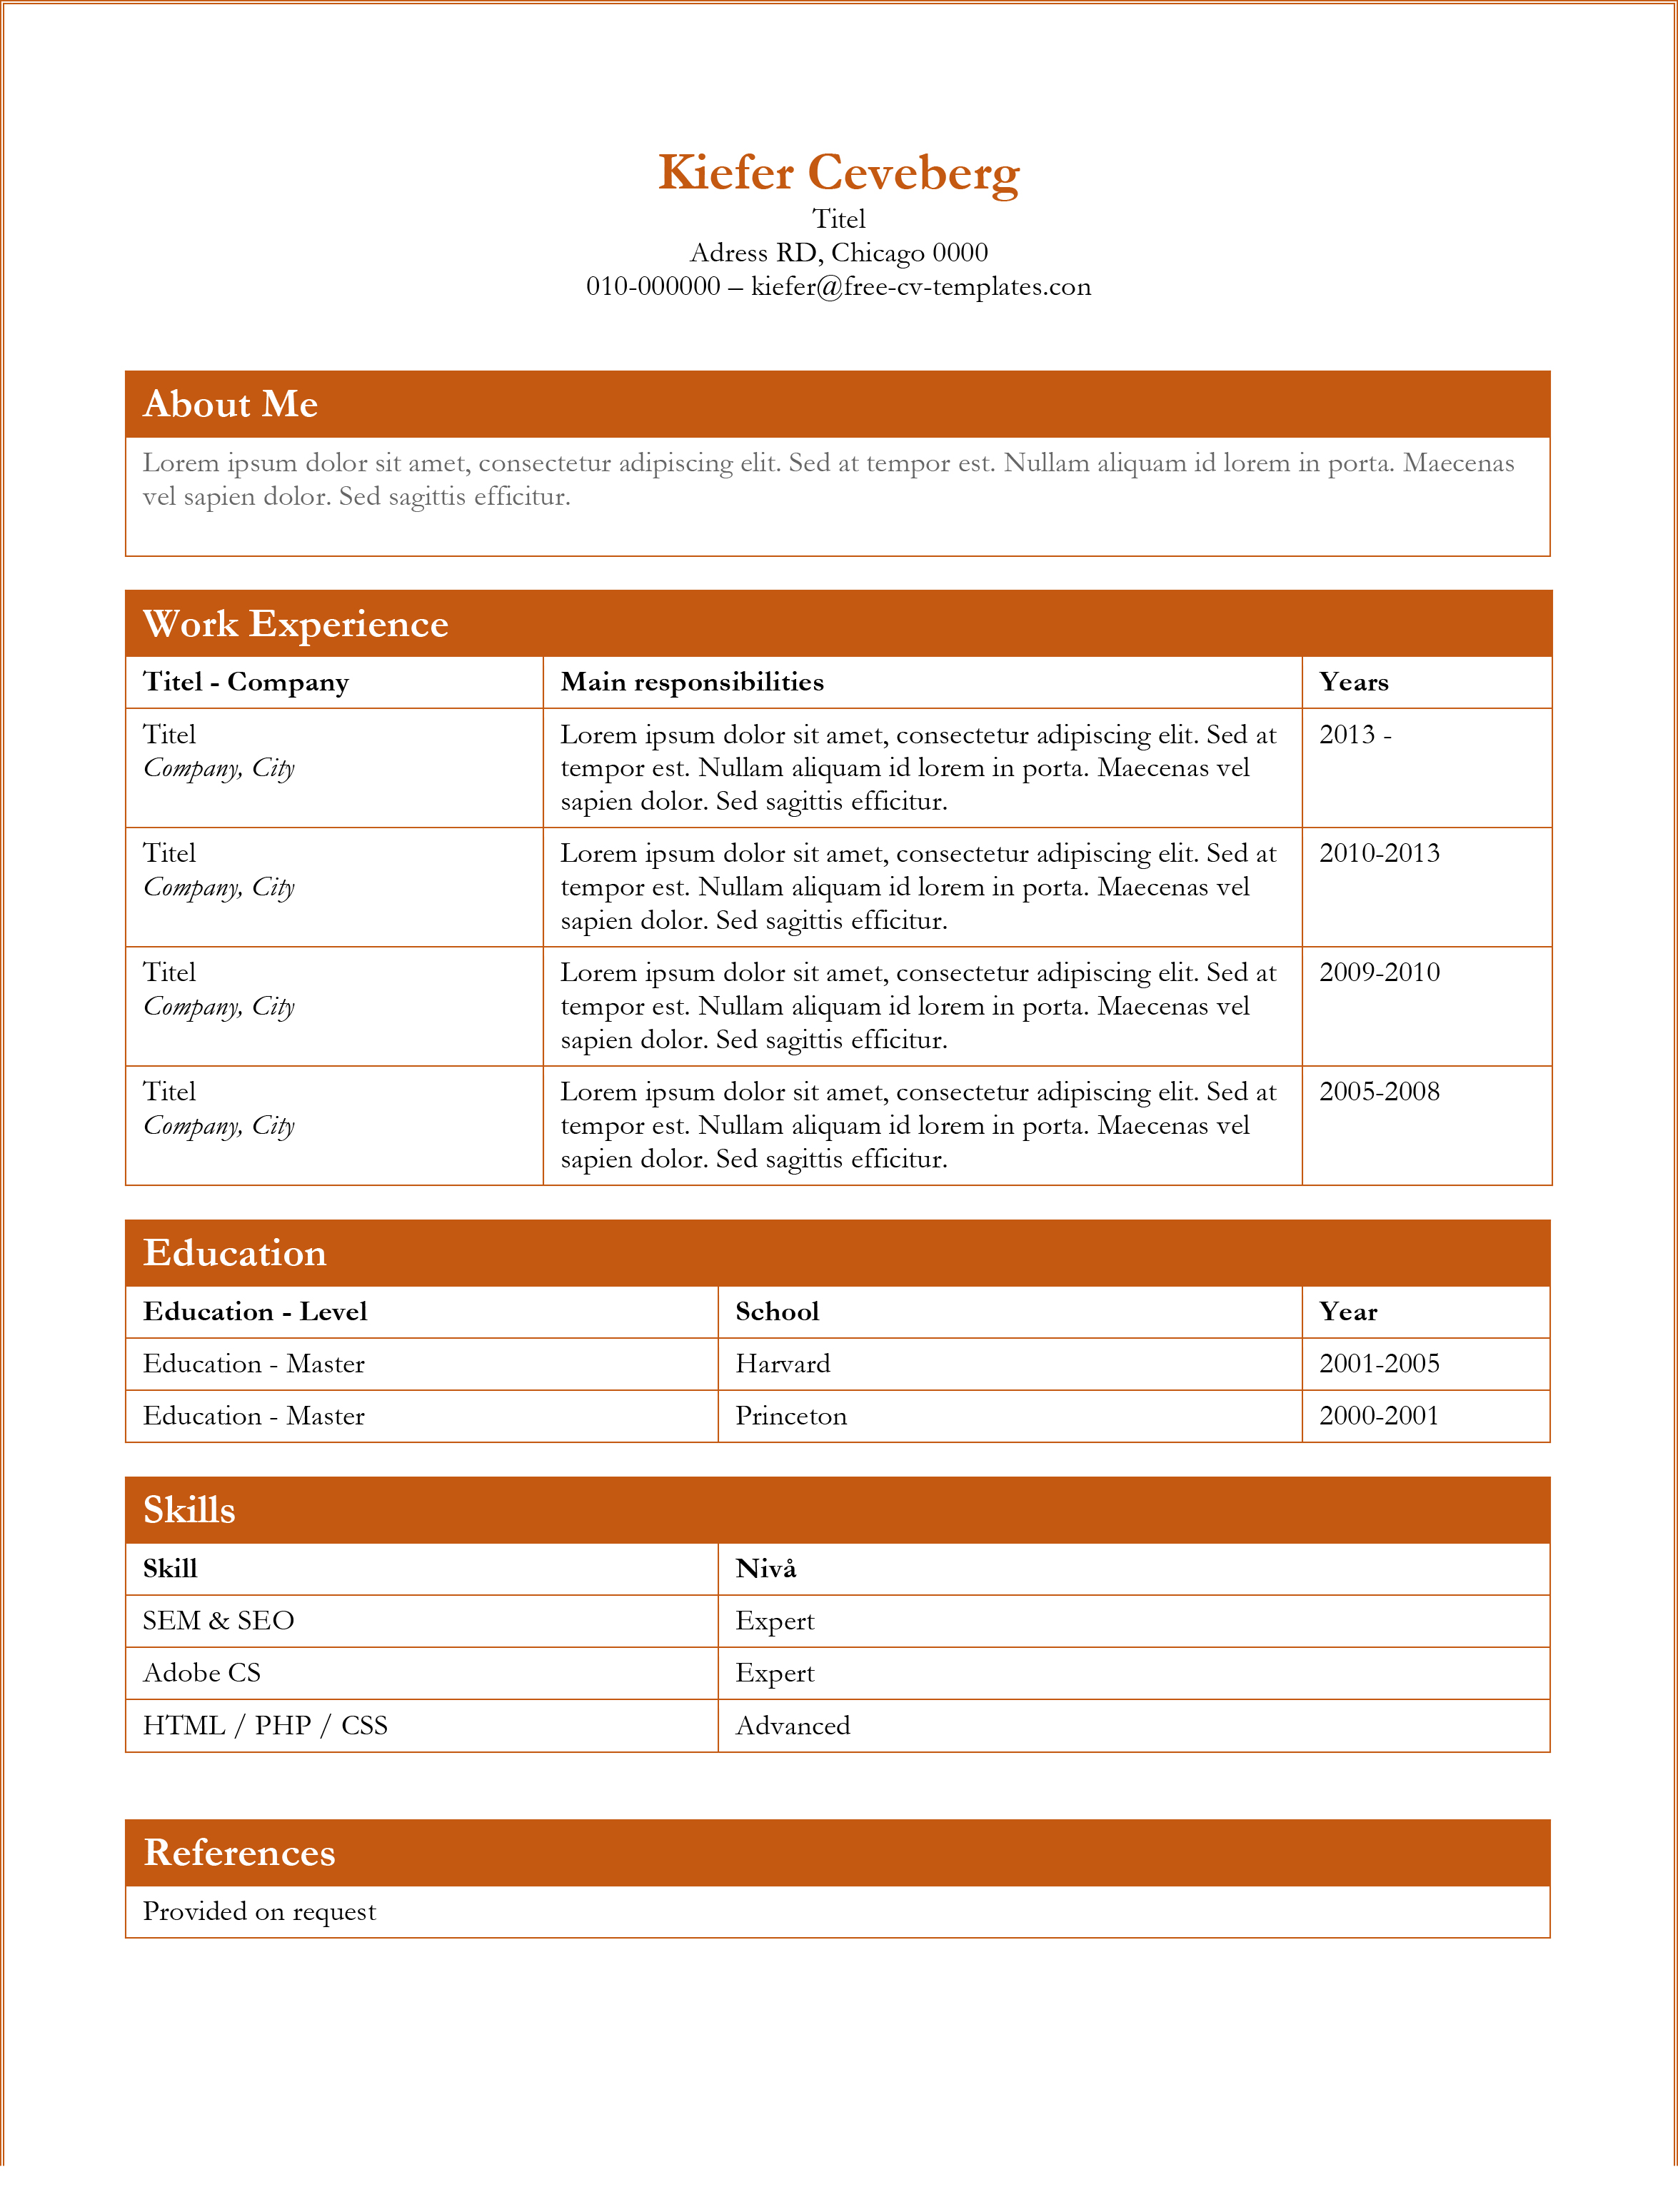 free resume template - Free Usable Resume Templates